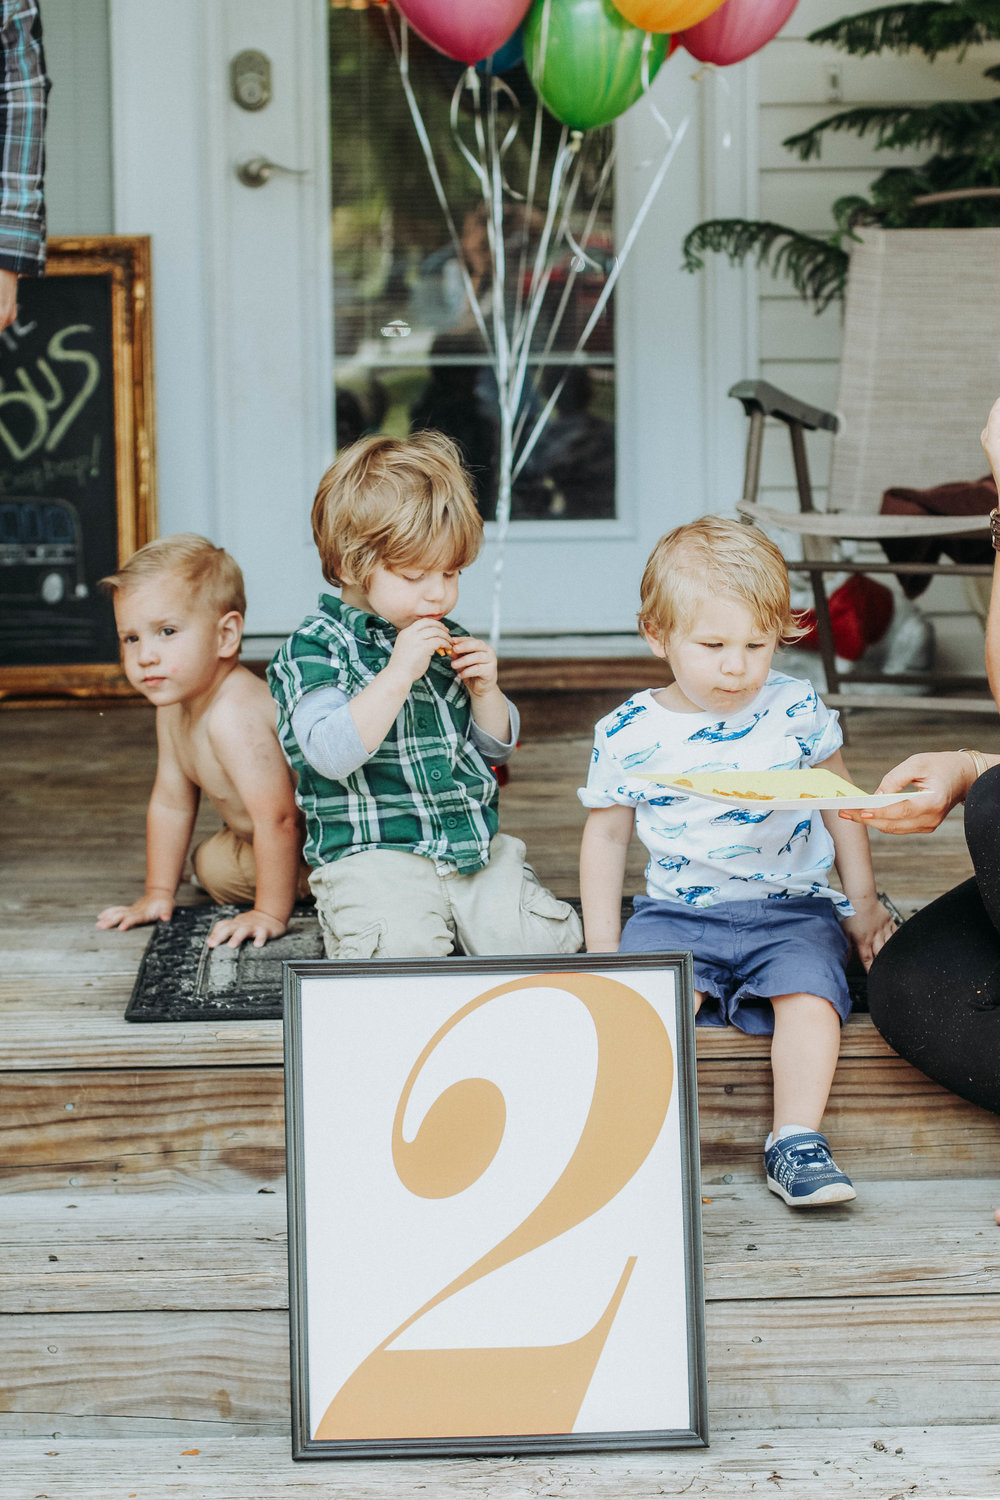 Emmerson (far right) with his two best friends since birth, Micah (far left) and Jaxson, his first cousin.